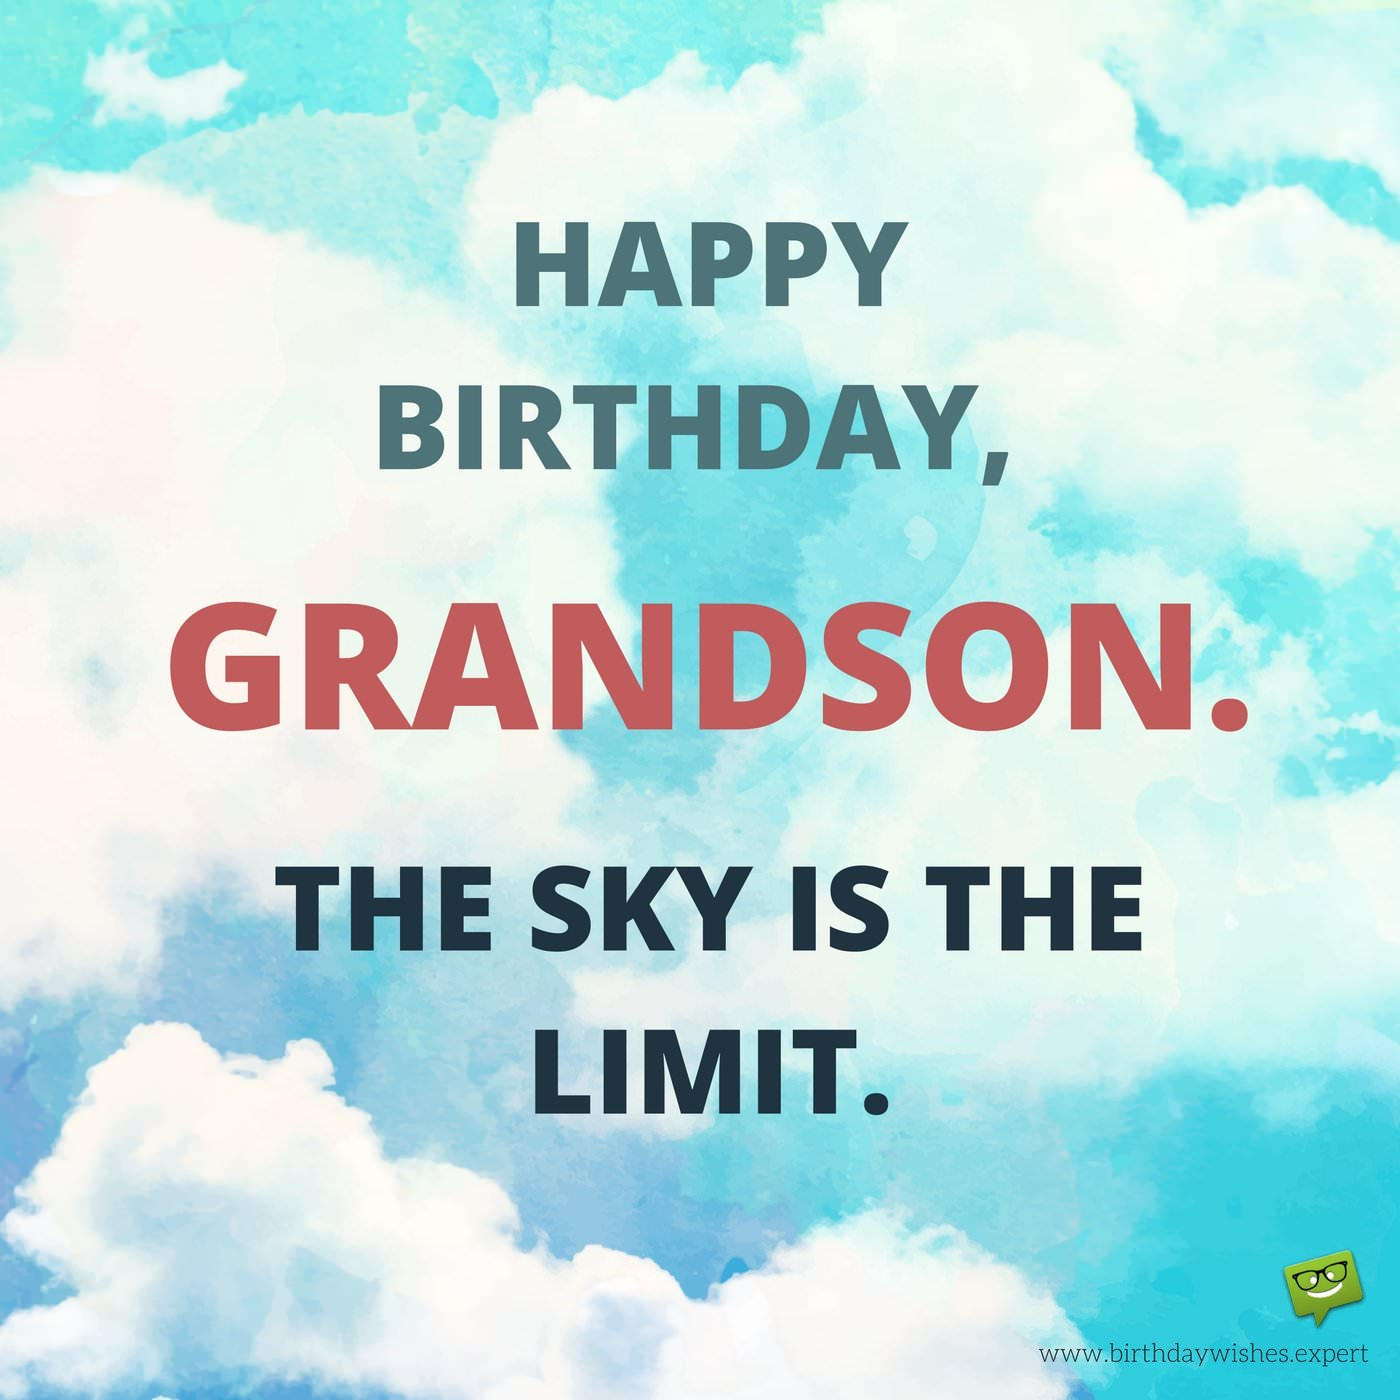 Free Happy Birthday Cards For Grandson From Your Grandma Grandpa Wishes My